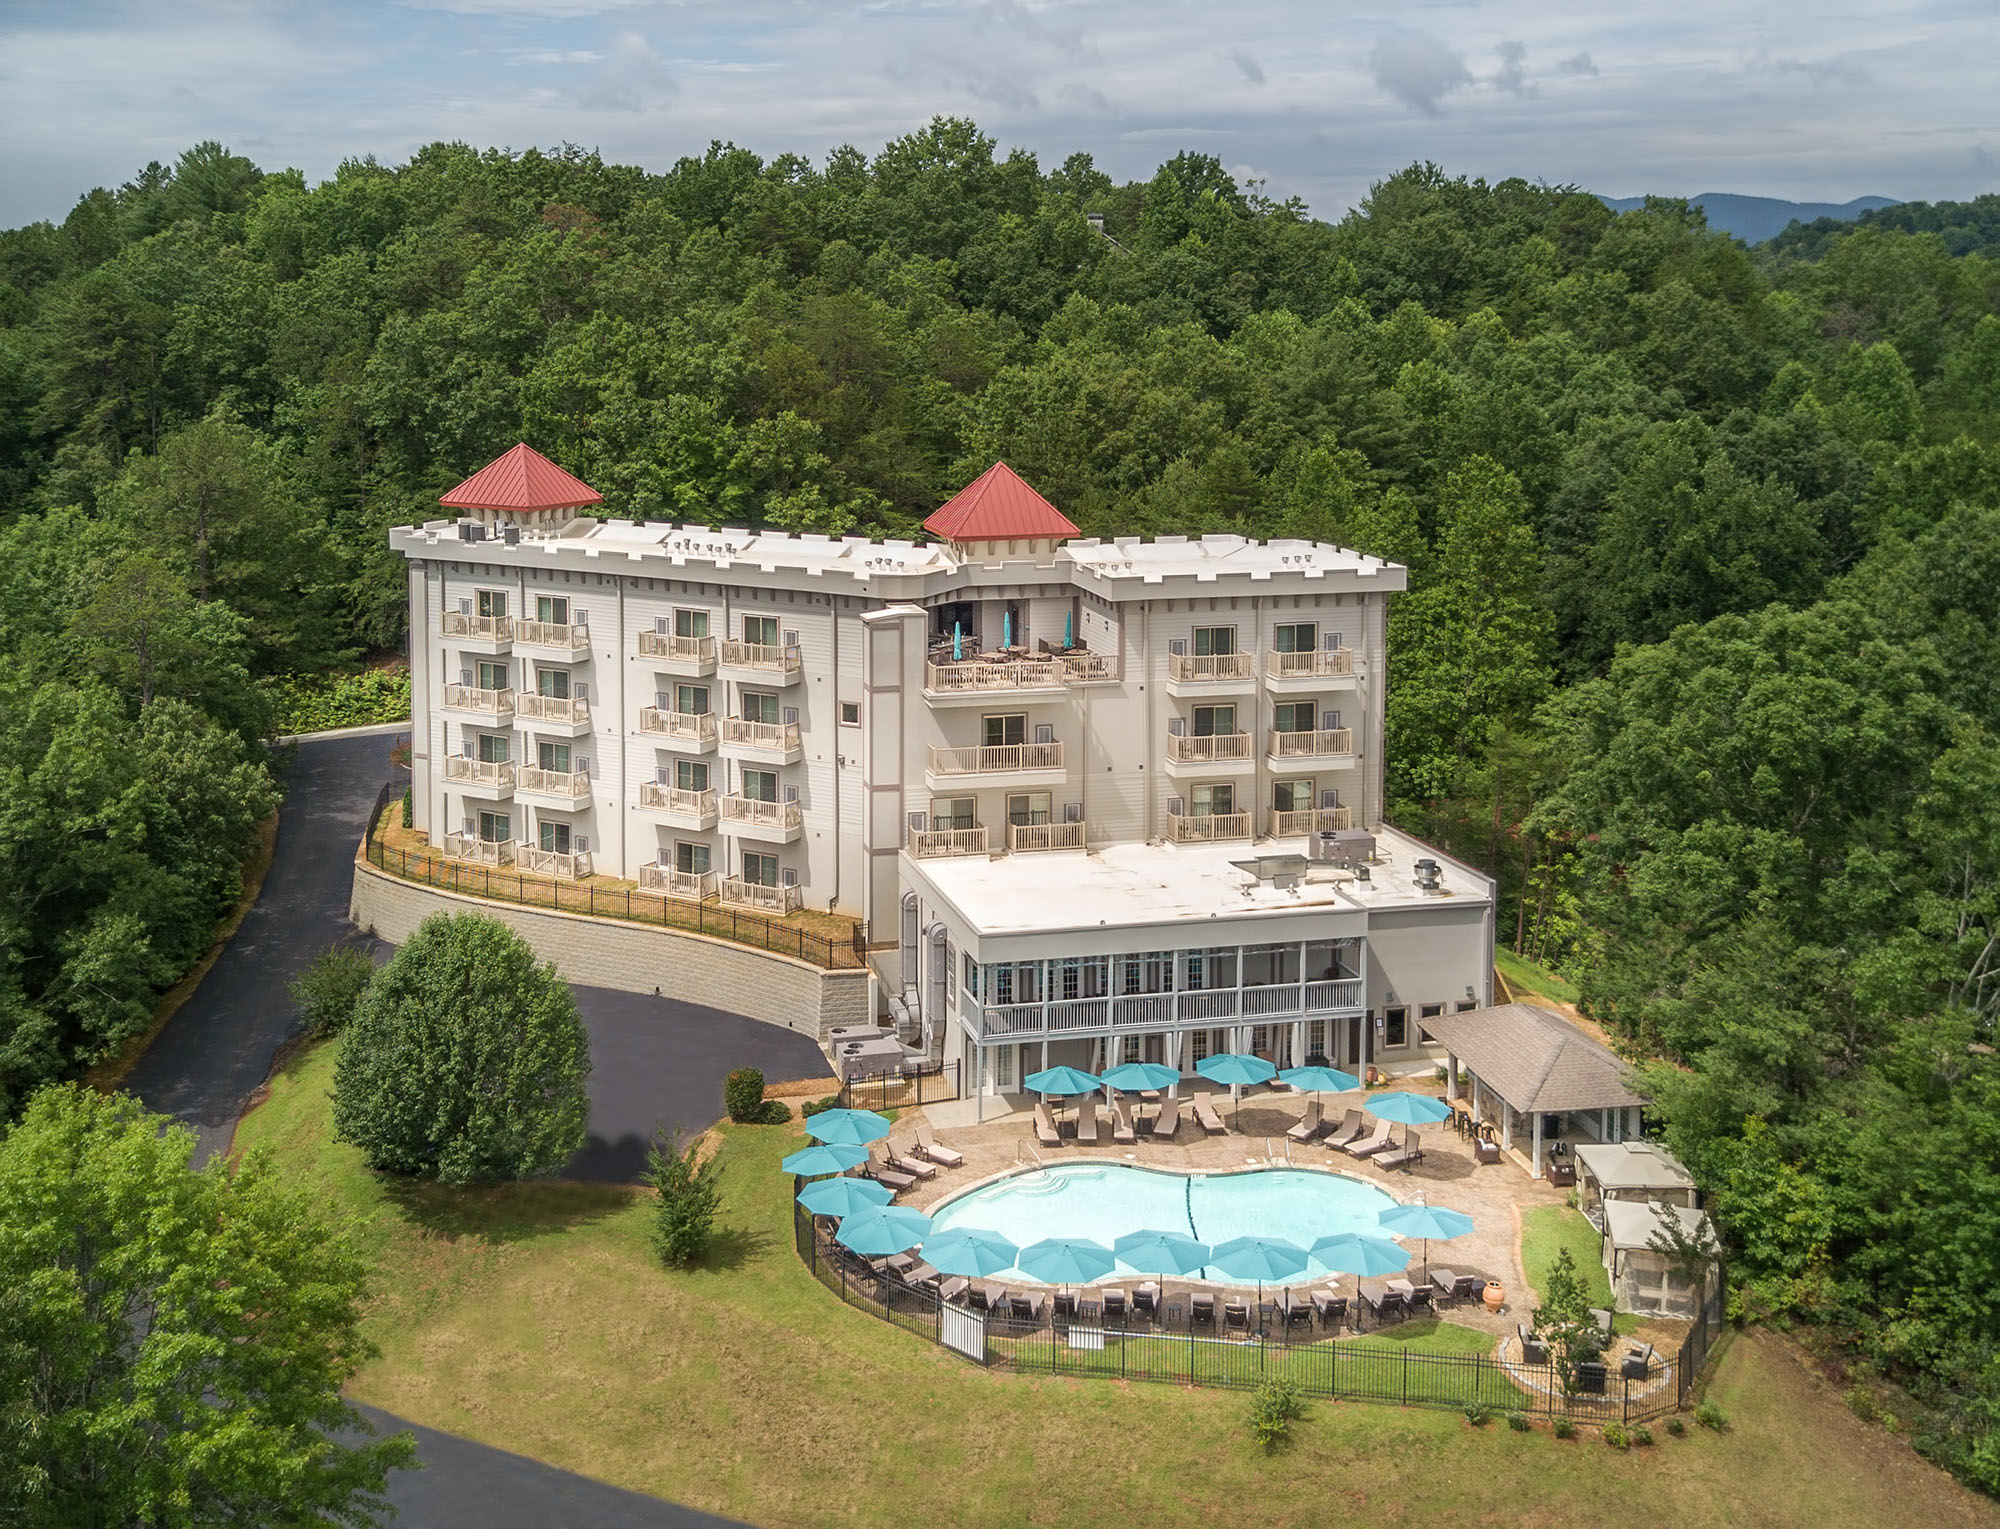 Valhalla Resort Hotel in Helen